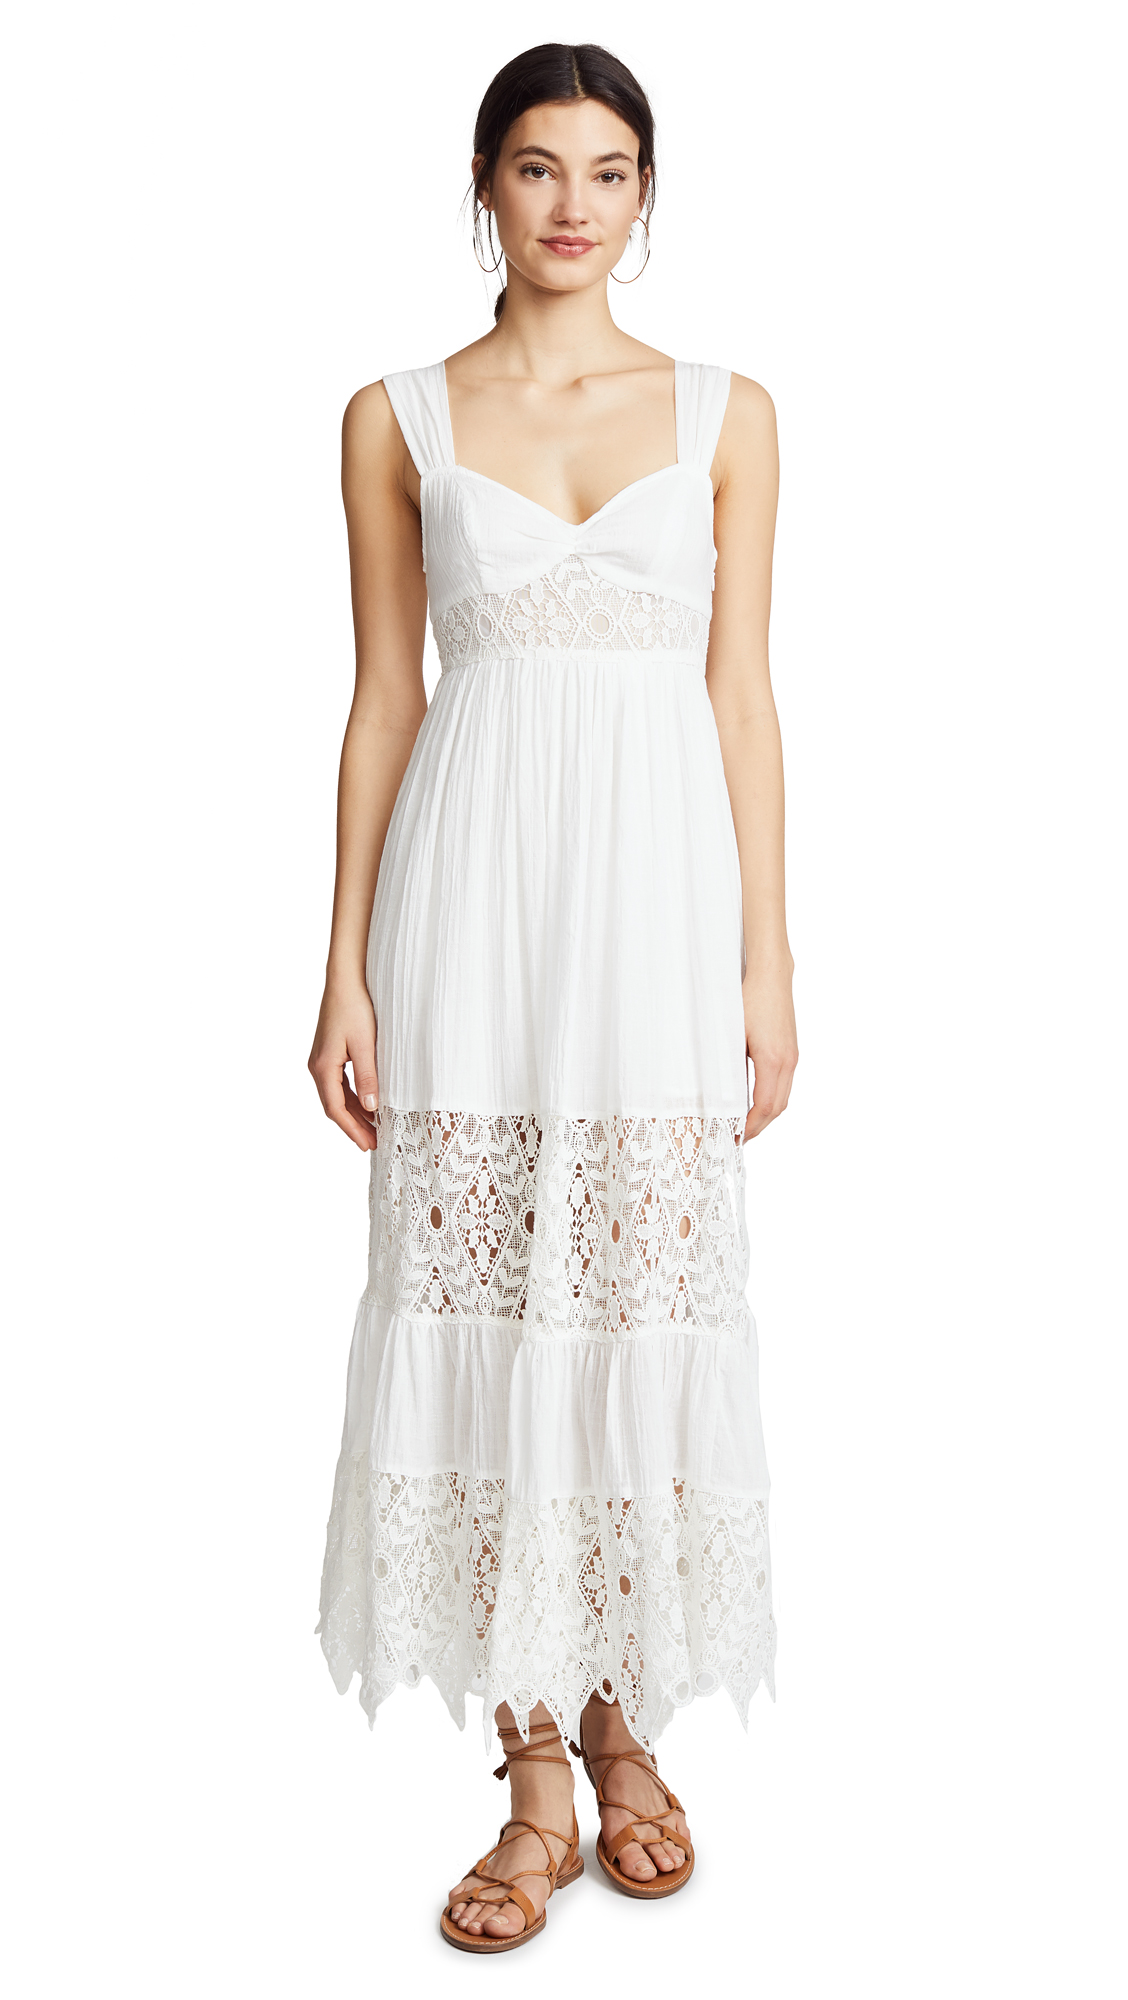 Free People Caught Your Eye Maxi Dress online dresses sales